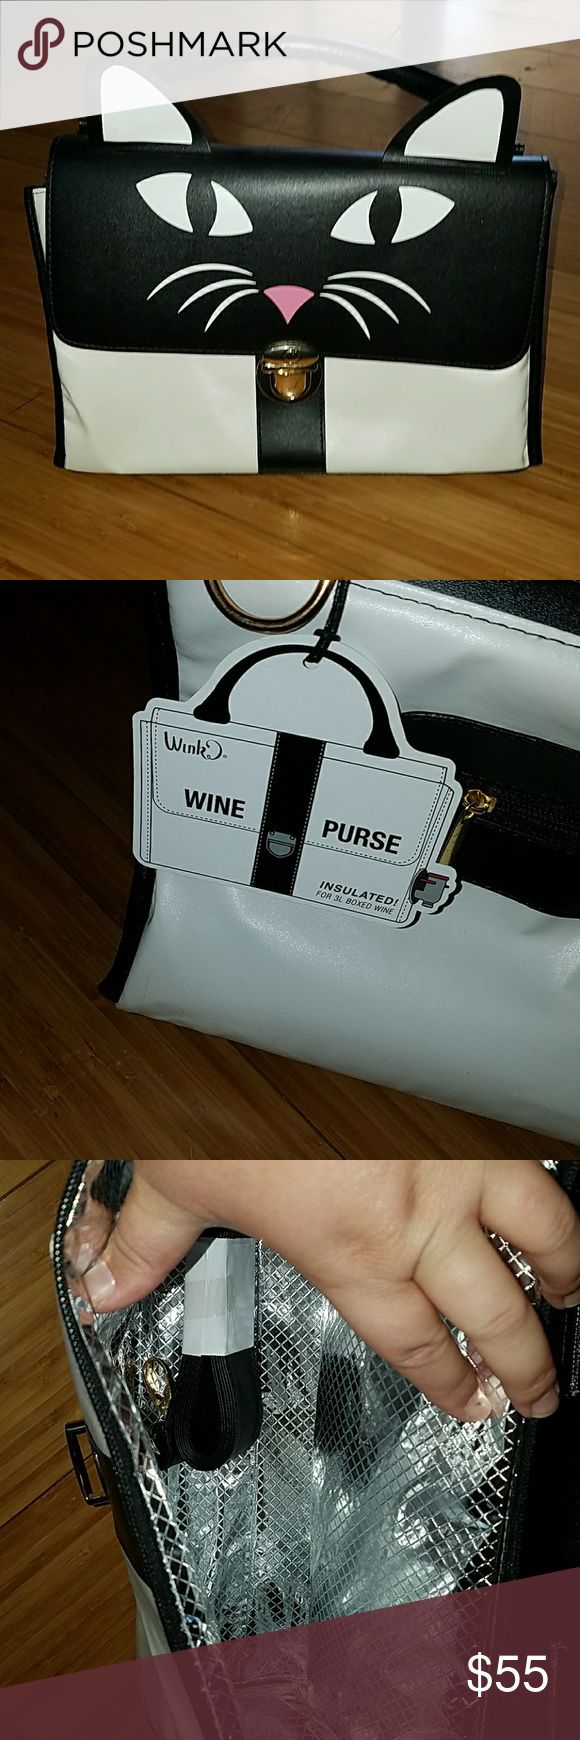 NEW Wine Purse Brand new Kitty Meow undercover wine purse wink Bags Totes